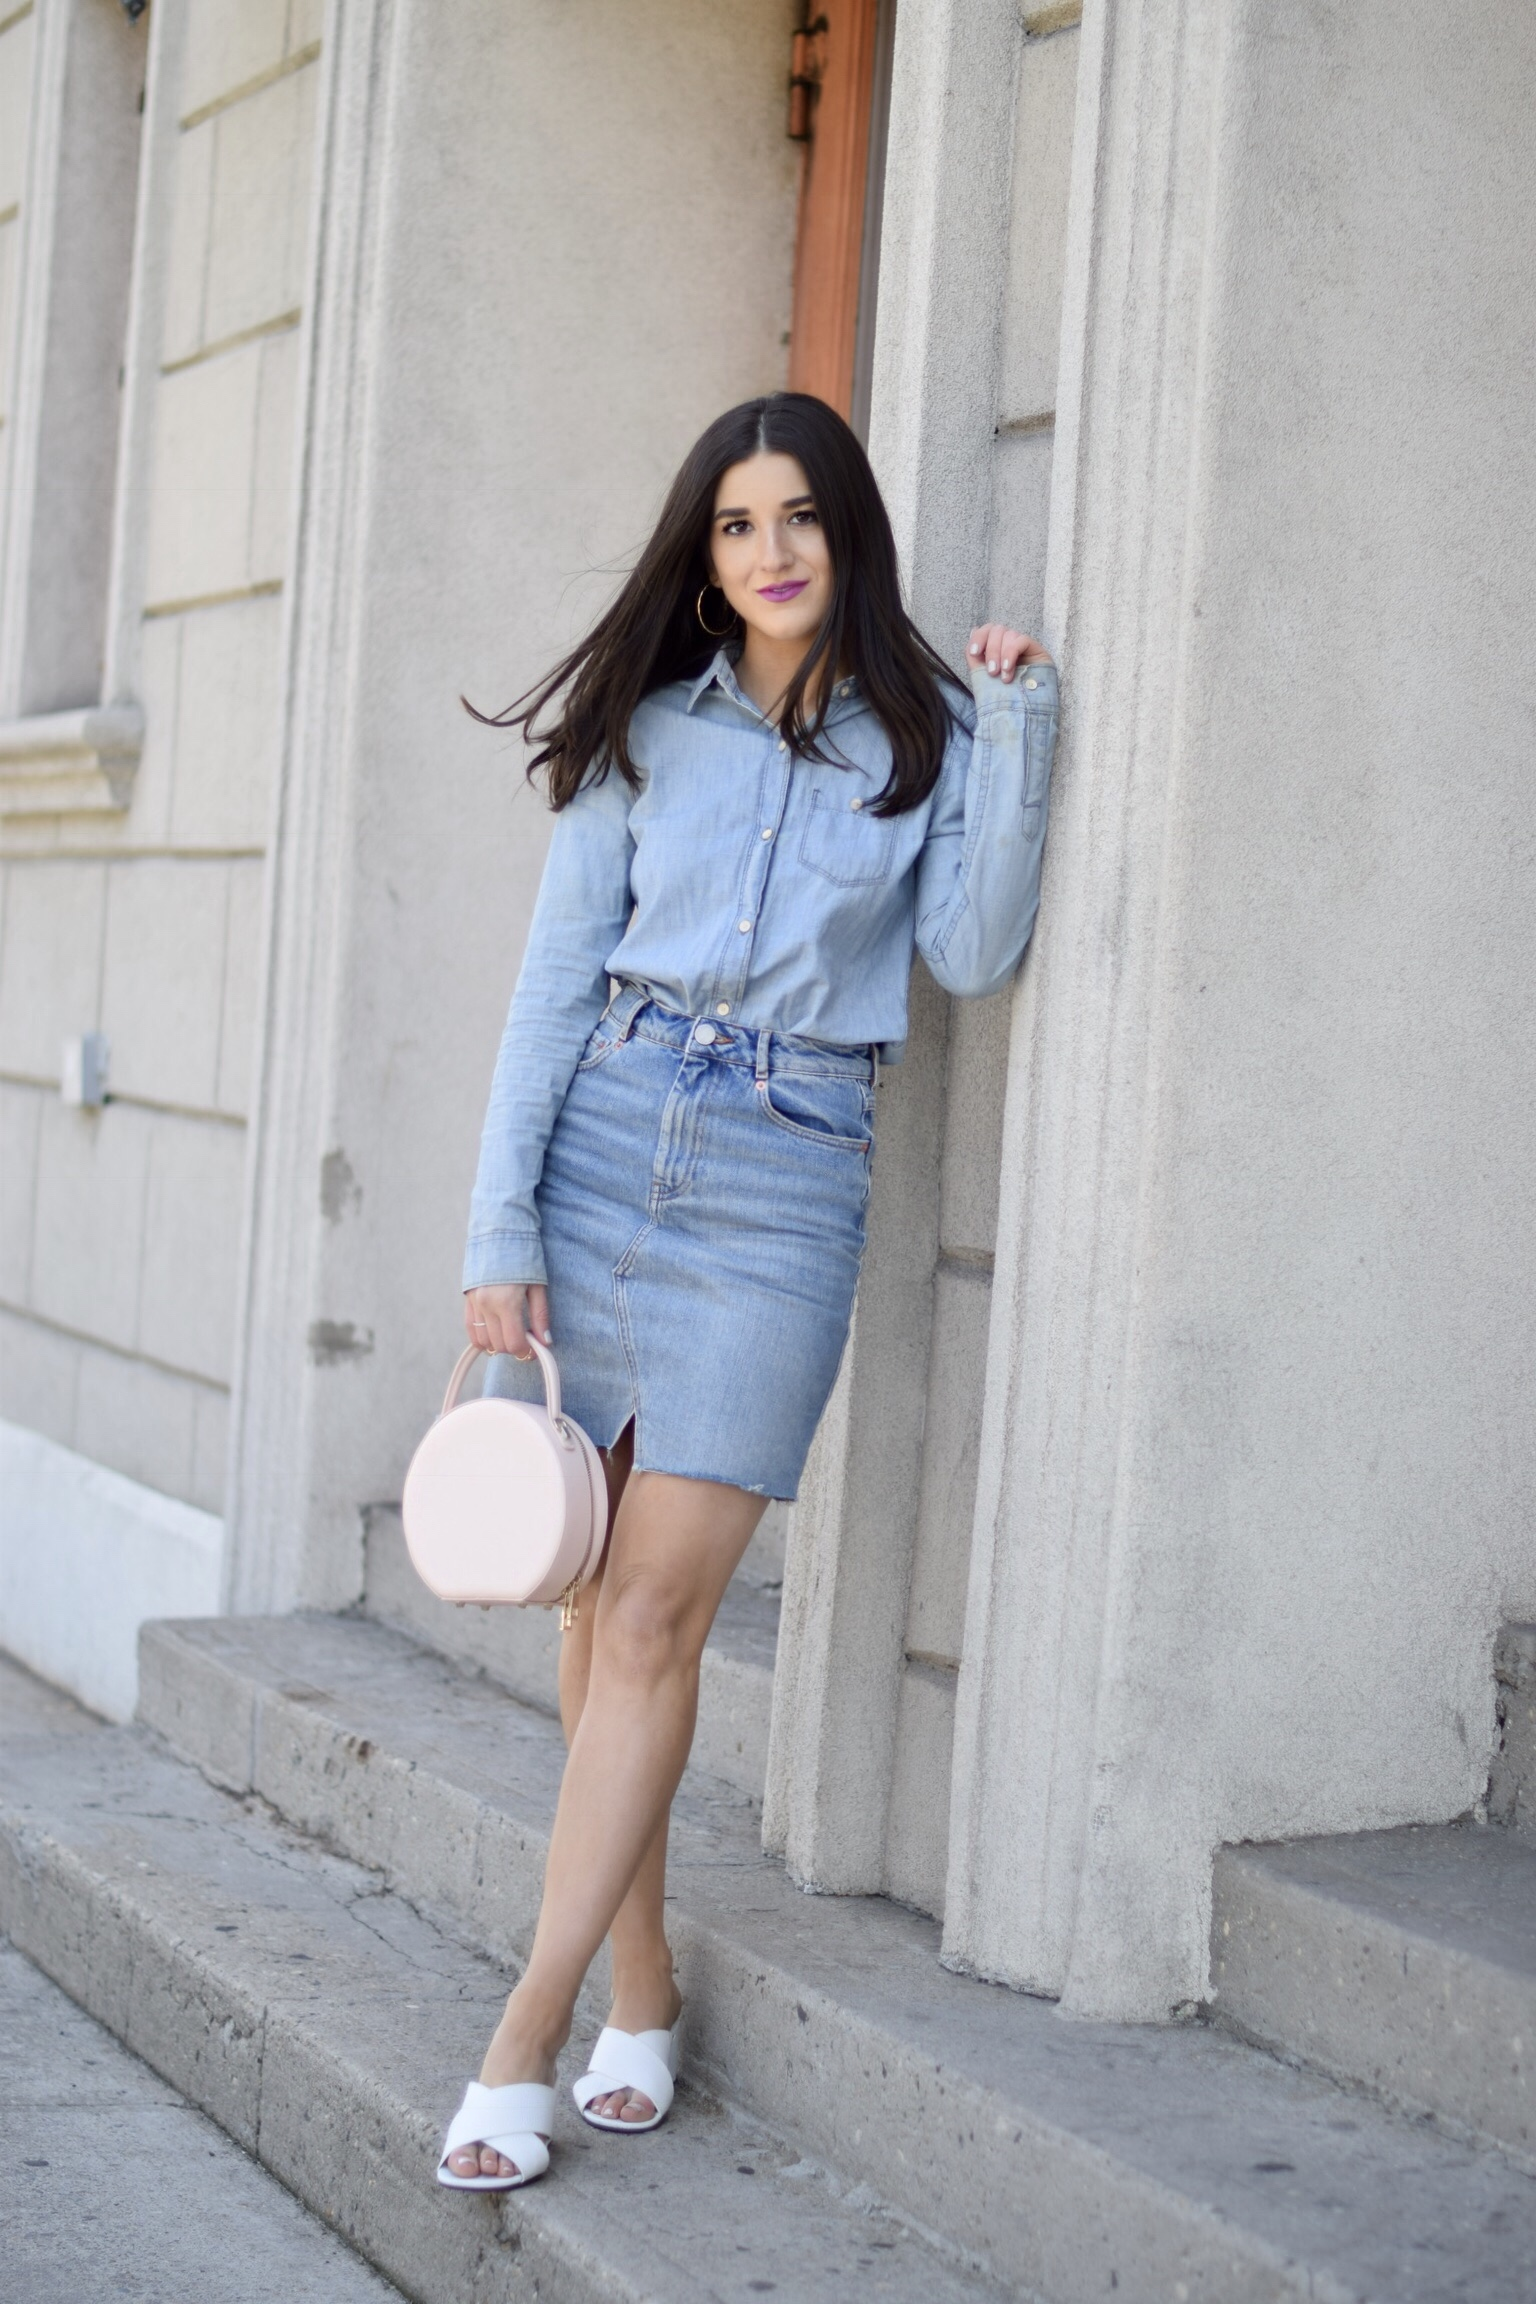 Do You Need Money To Be A Blogger Canadian Tuxedo White Mules Esther Santer Fashion Blog NYC Street Style Blogger Outfit OOTD Trendy Denim Skirt Jean Shirt Gap ASOS Shoes Girl Women Gold Hoops How To Wear Shop Buy Pretty New York City Pink Circle  Bag.jpg